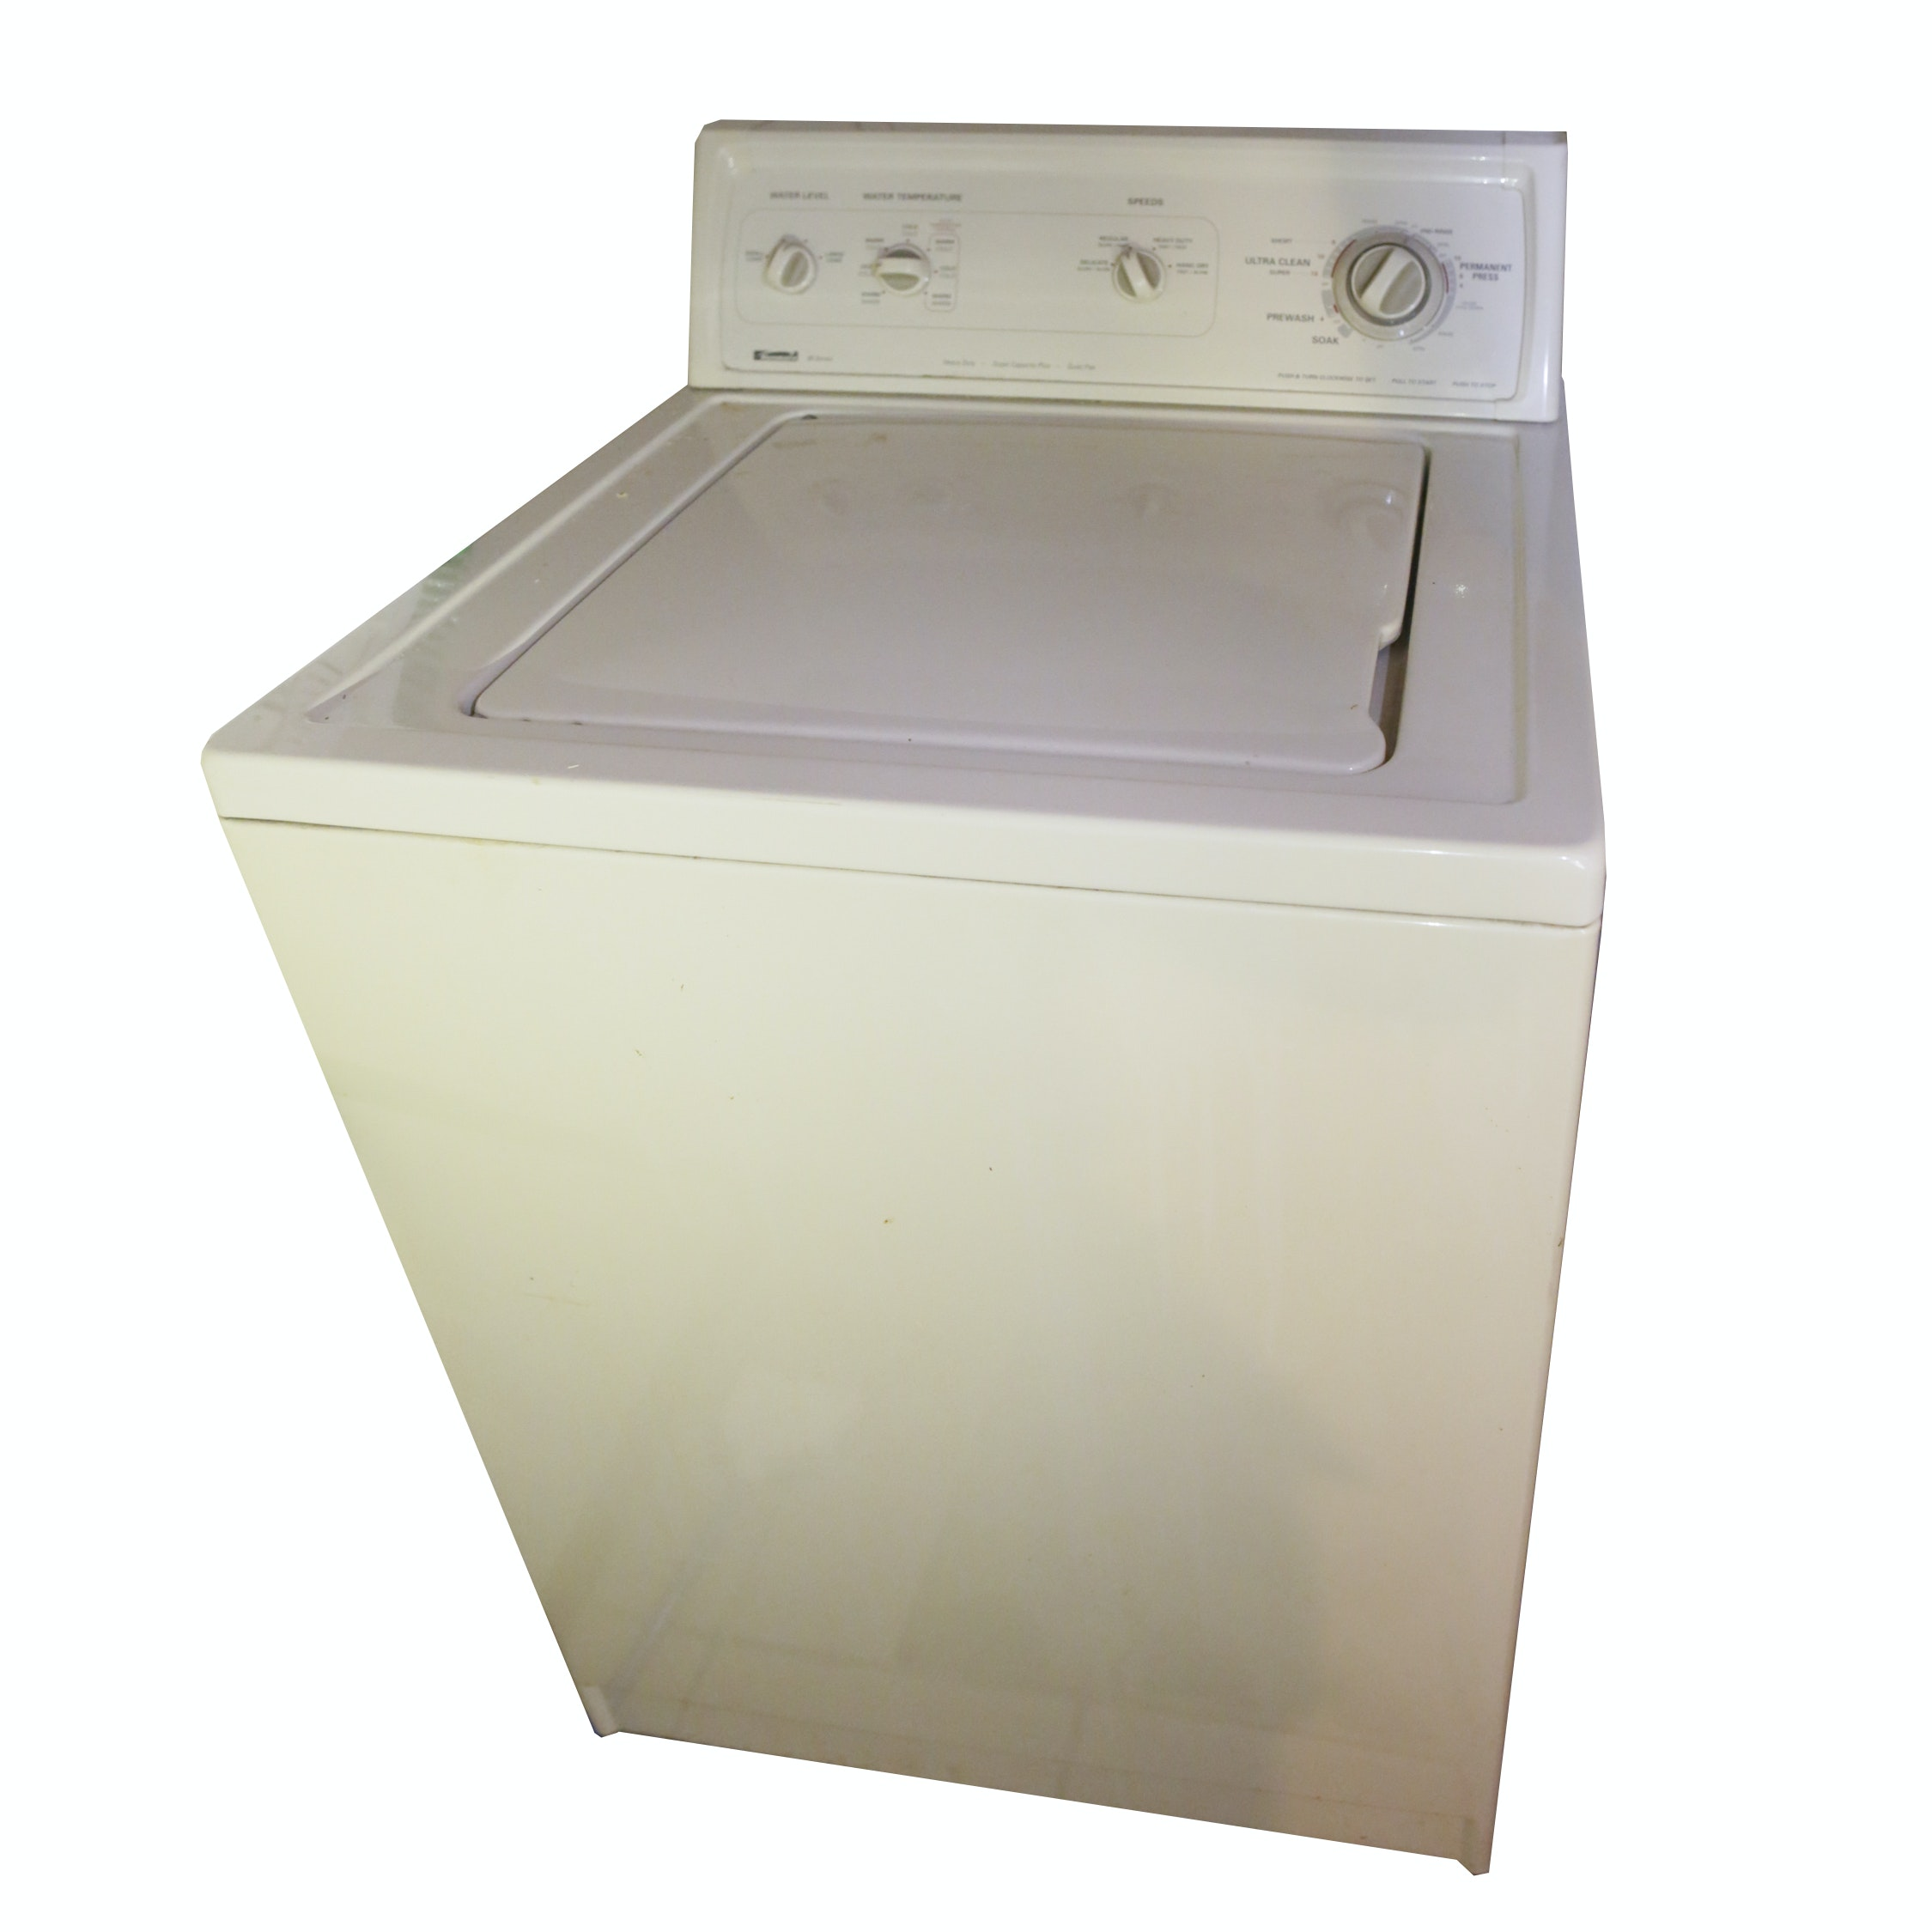 Kenmore 80 Series Top-Loading Washing Machine